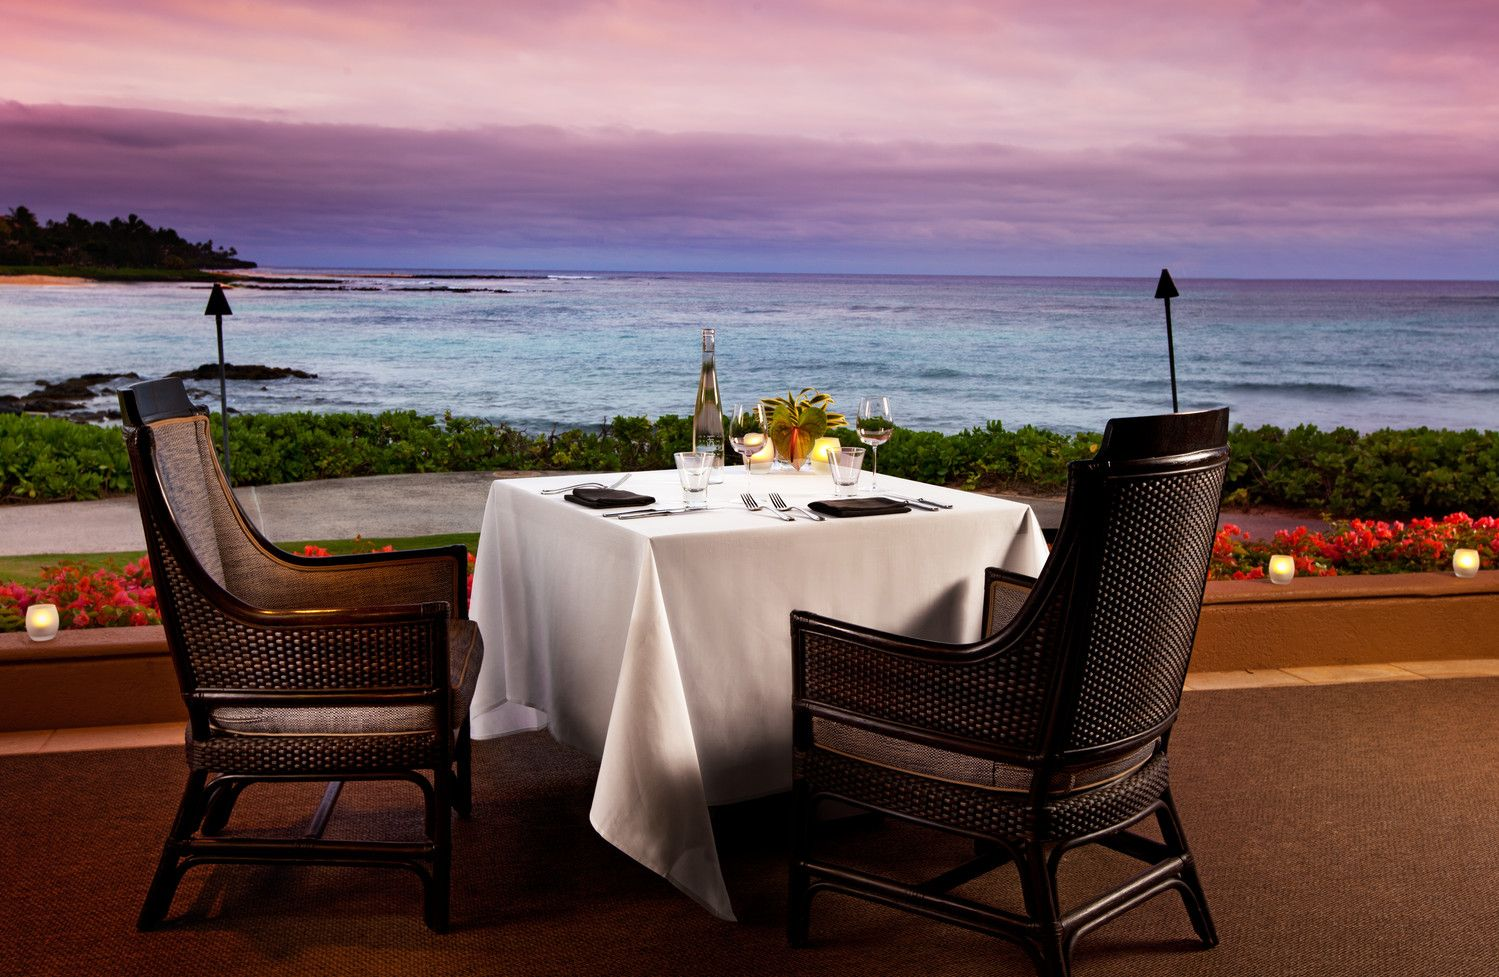 Kauai Oceanfront Restaurants - Halelani Romantic Dinner